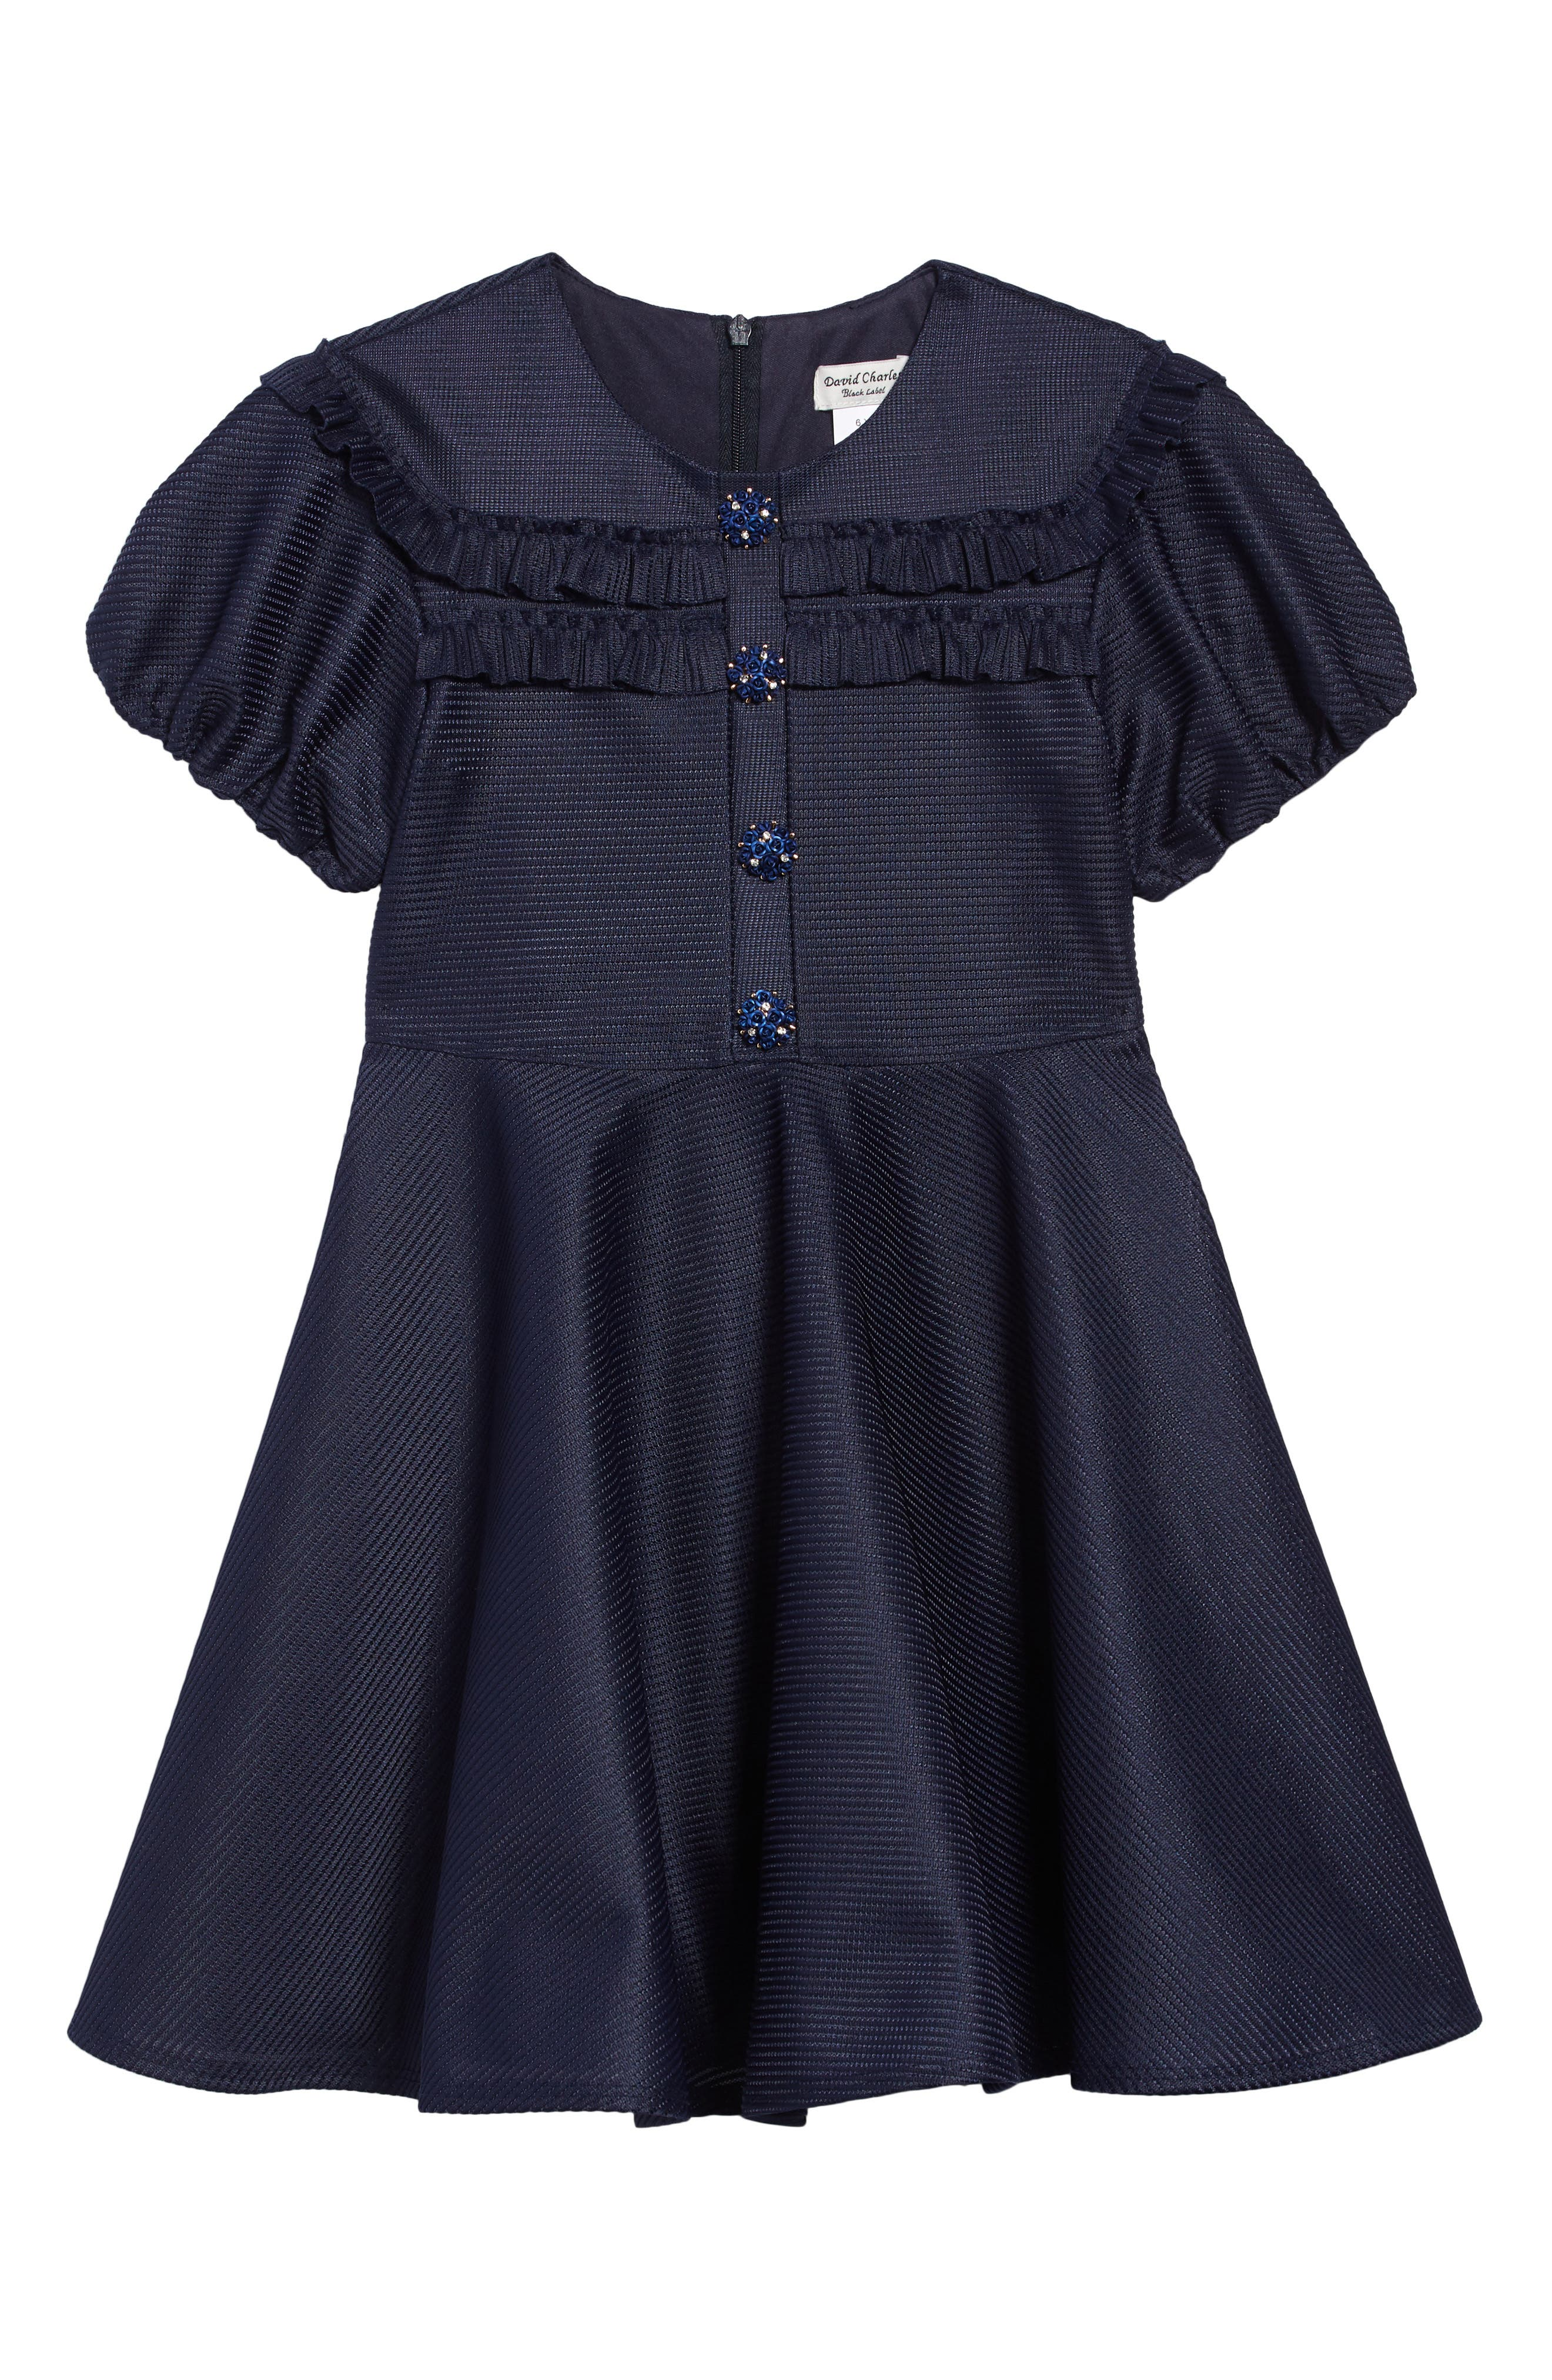 Victorian Kids Costumes & Shoes- Girls, Boys, Baby, Toddler Toddler Girls David Charles Tonal Stripe Fit  Flare Dress Size 3Y - Blue $111.49 AT vintagedancer.com